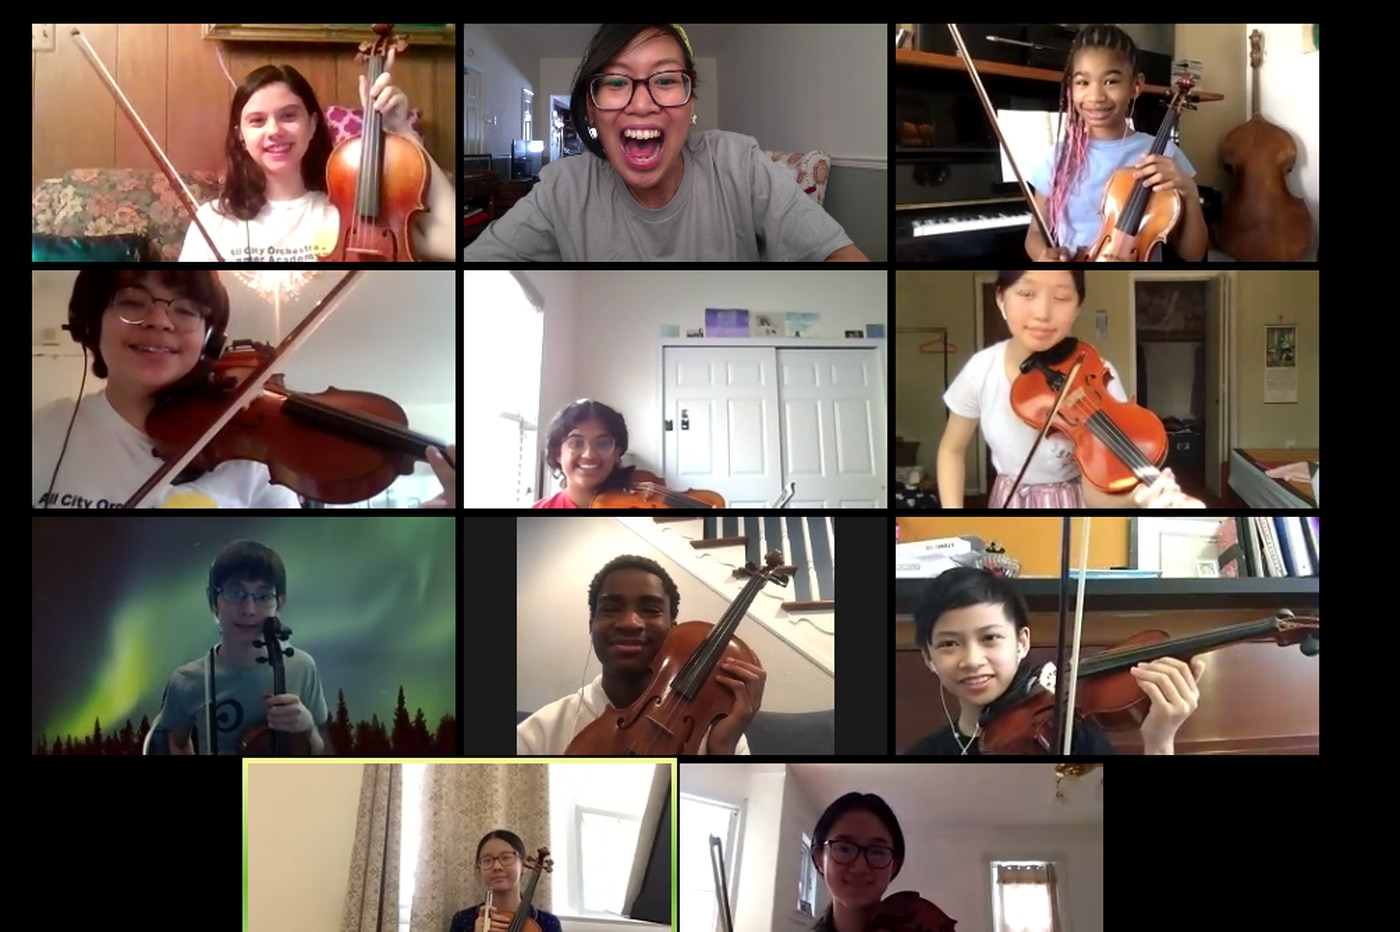 Nearly 100 Philly schoolkids practiced on Zoom with Philadelphia Orchestra virtuosos, and you're invited to the grand finale